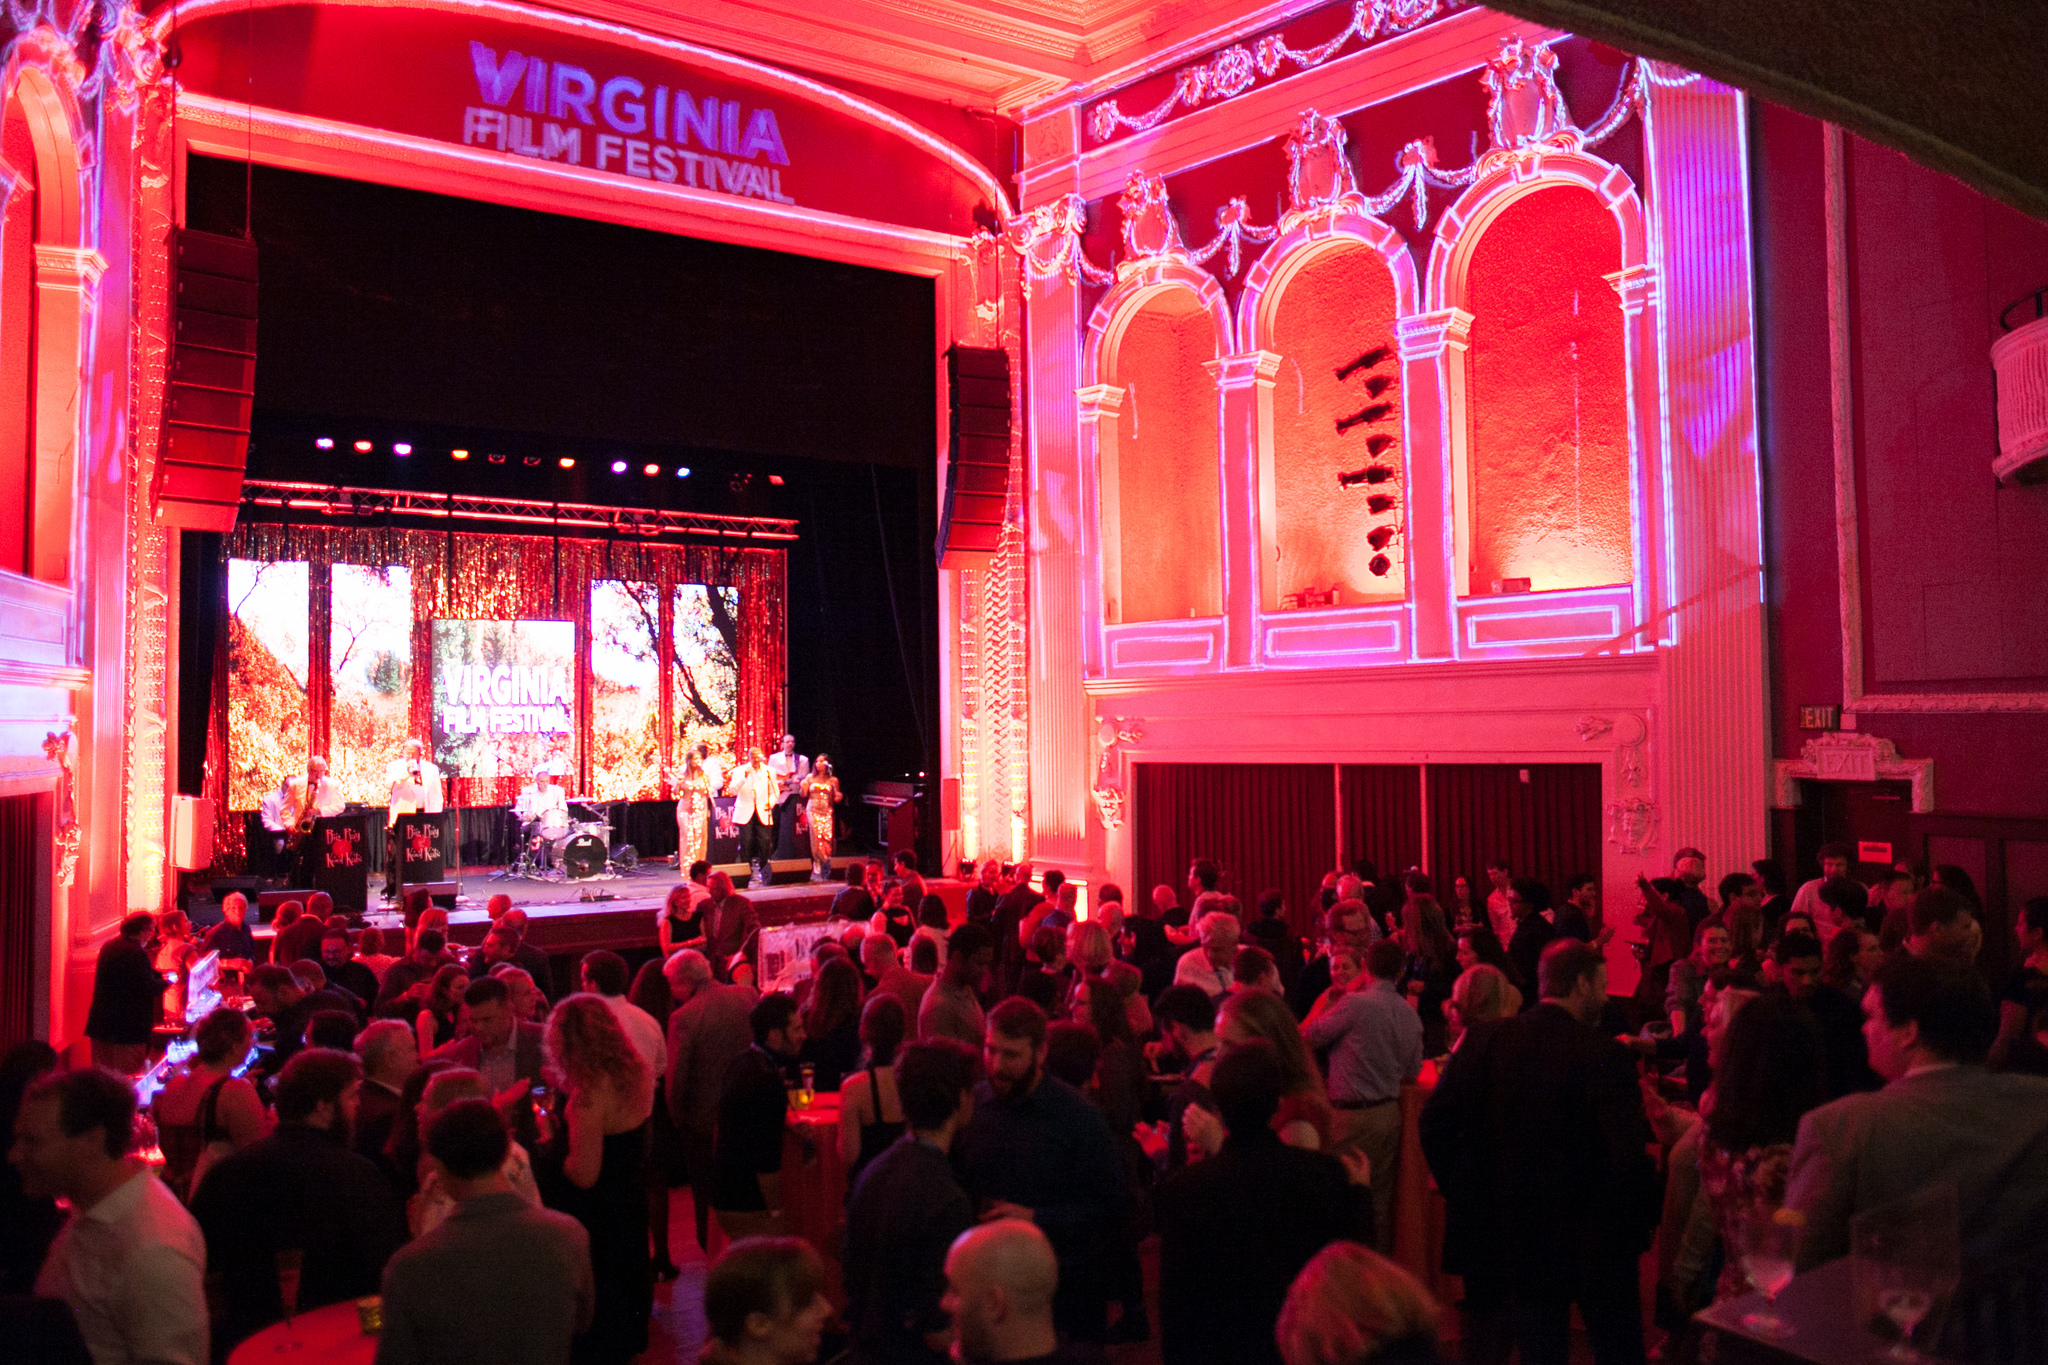 Virginia Film Festival LED Wall & Projection Mapping